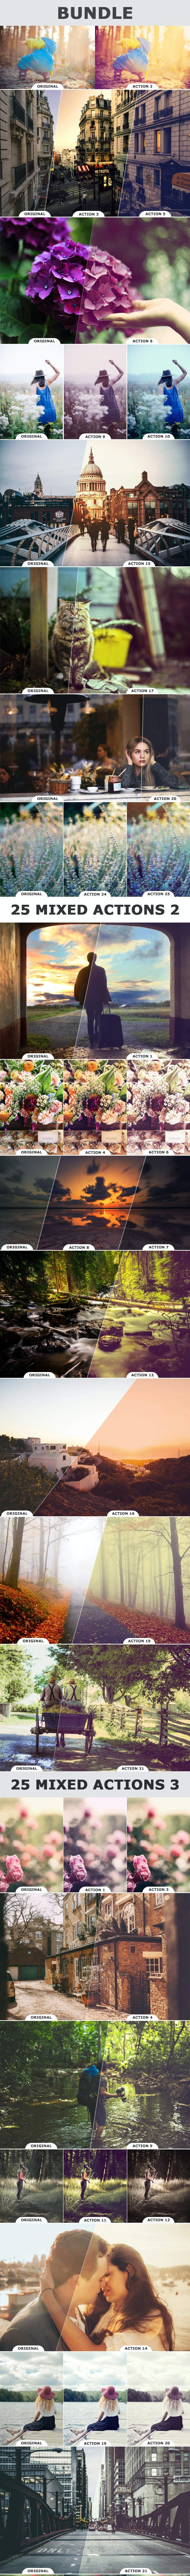 75 Mixed Actions Bundle - Photo Effects Actions